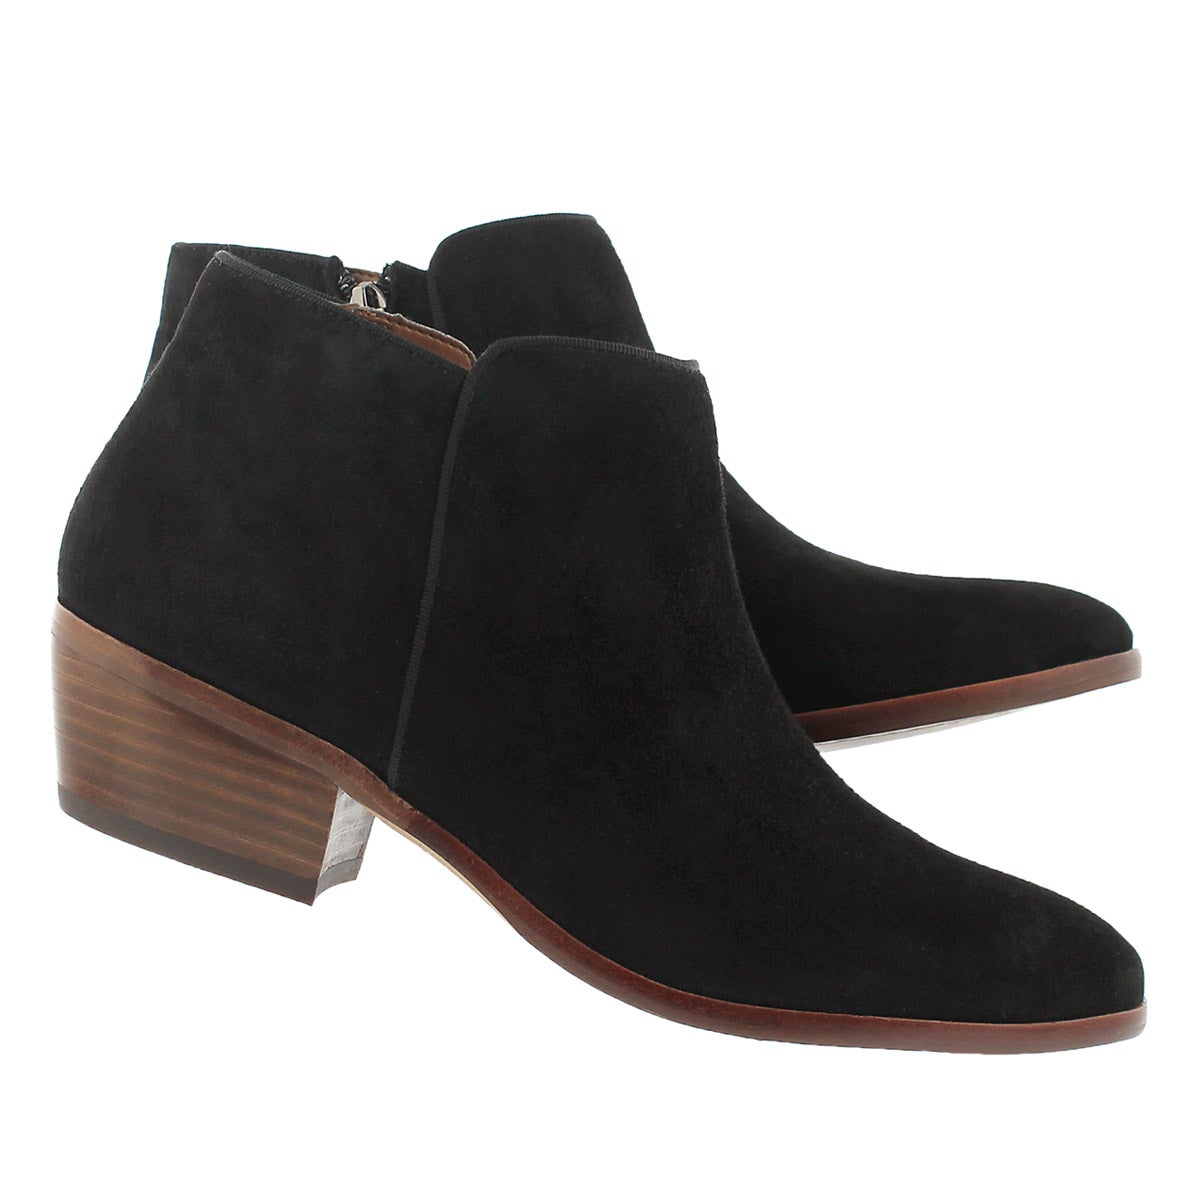 Lds Petty black suede casual bootie